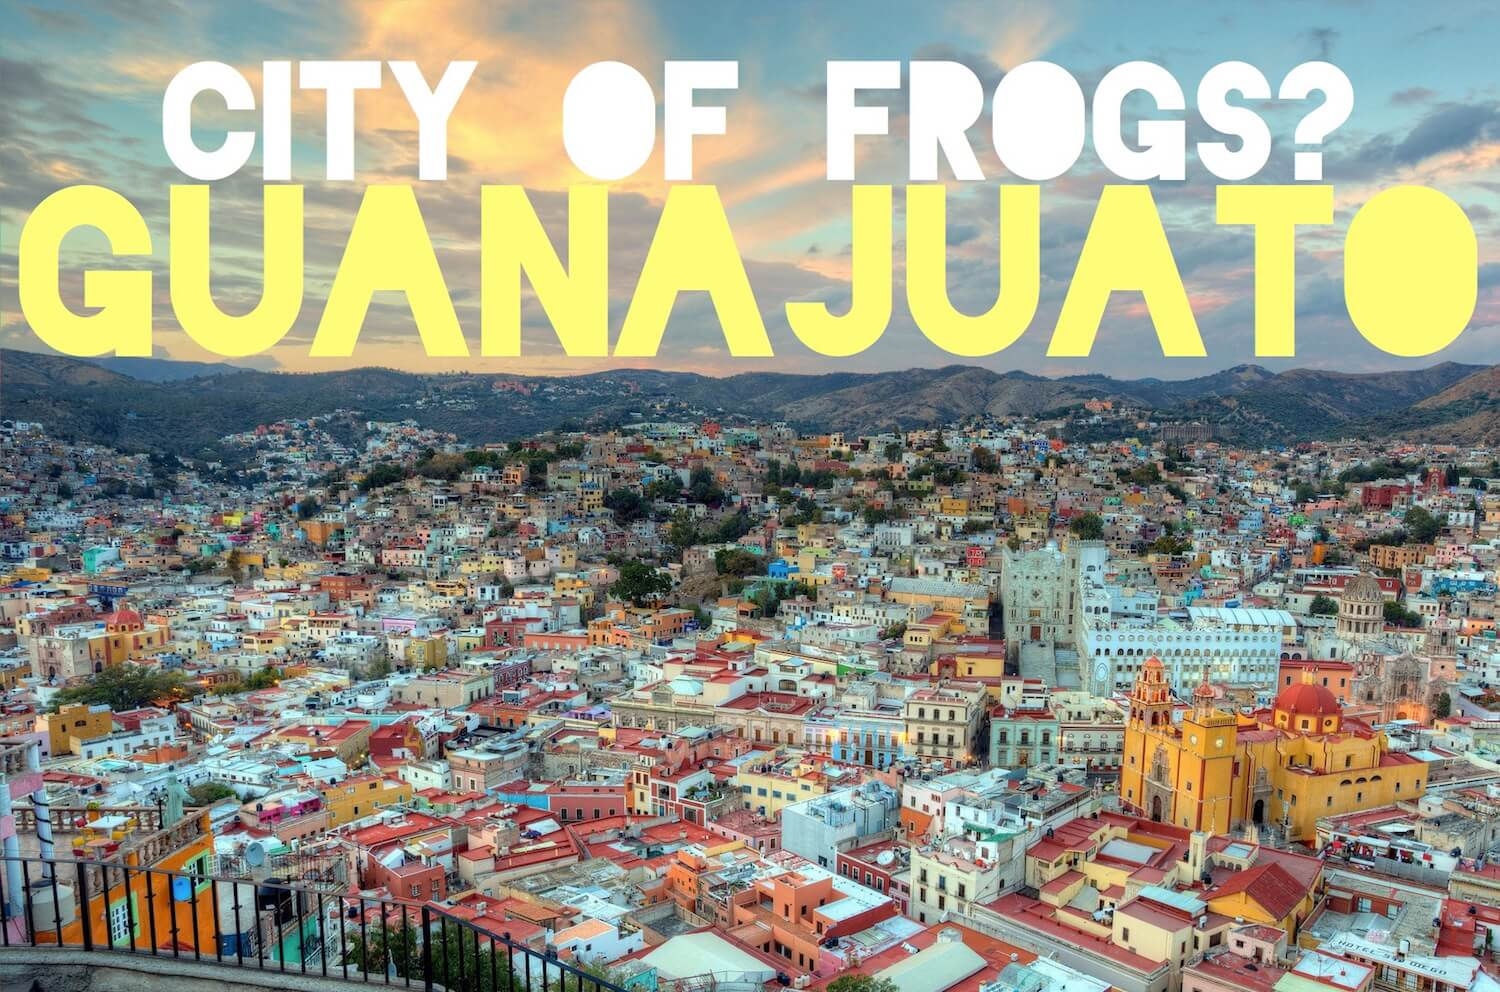 guanajuato city of frogs panorama